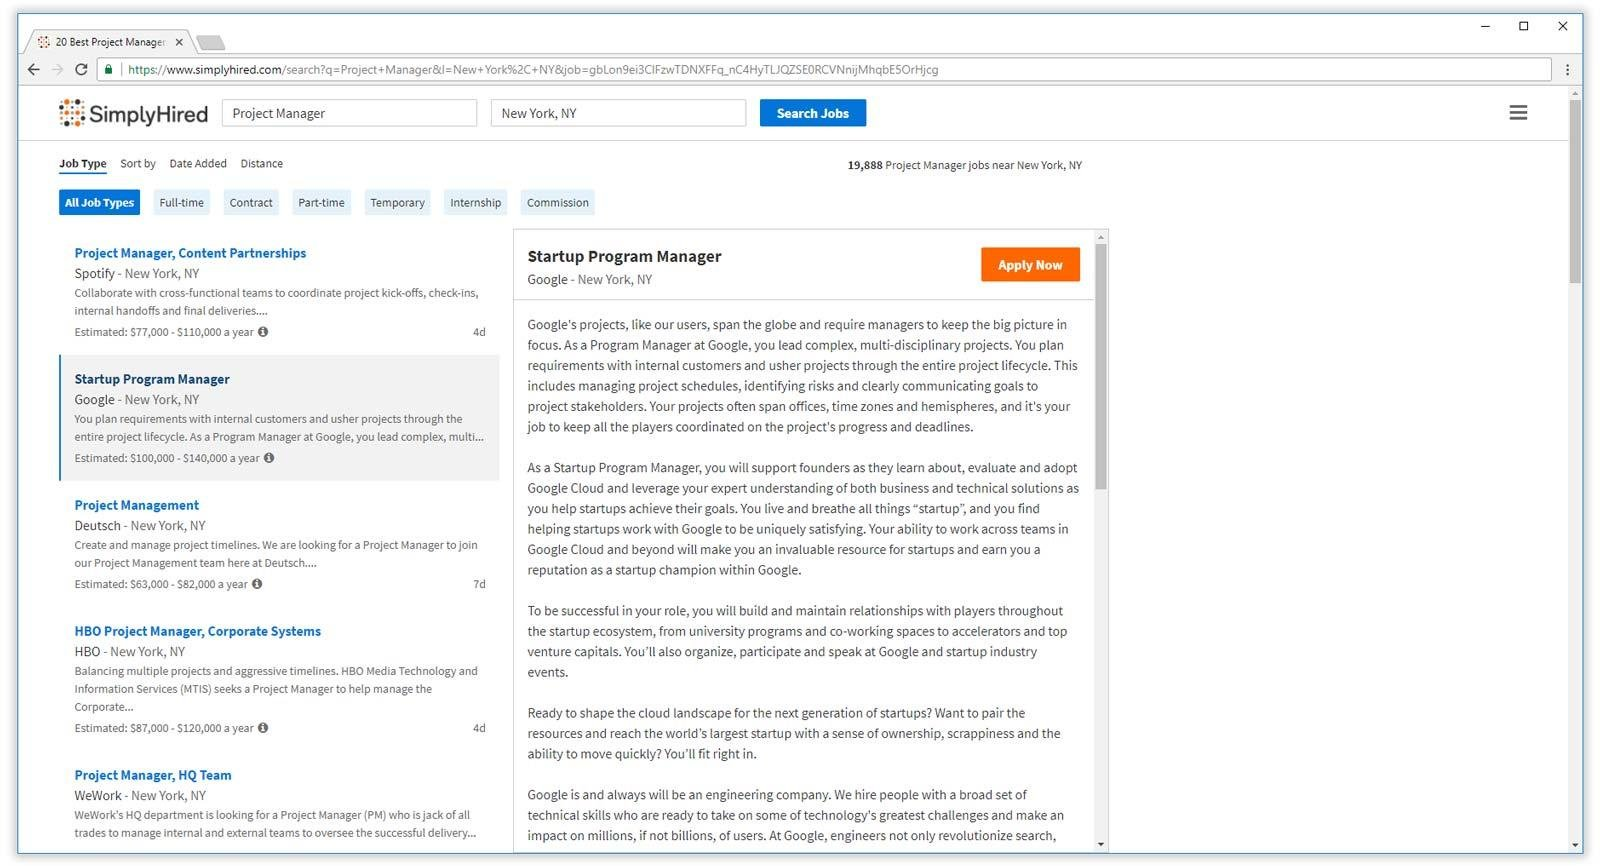 simplyhired job search results